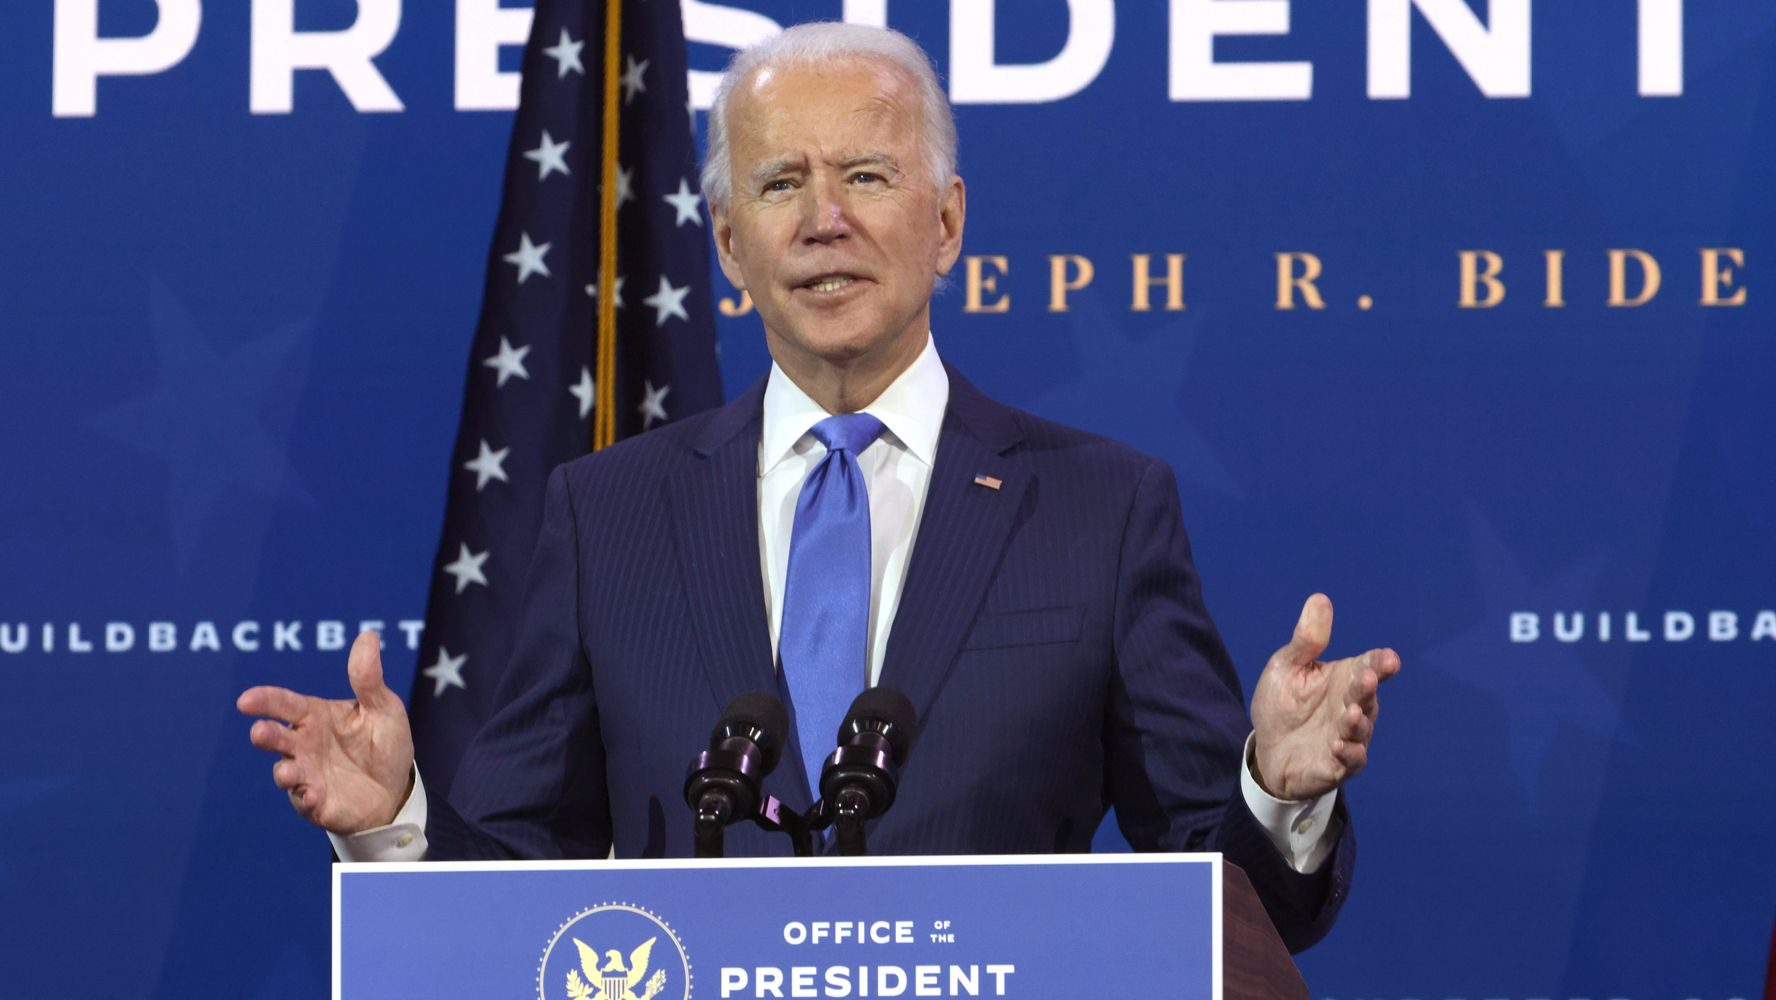 Joe Biden To Carry Georgia After Second Recount, State Election Official Says